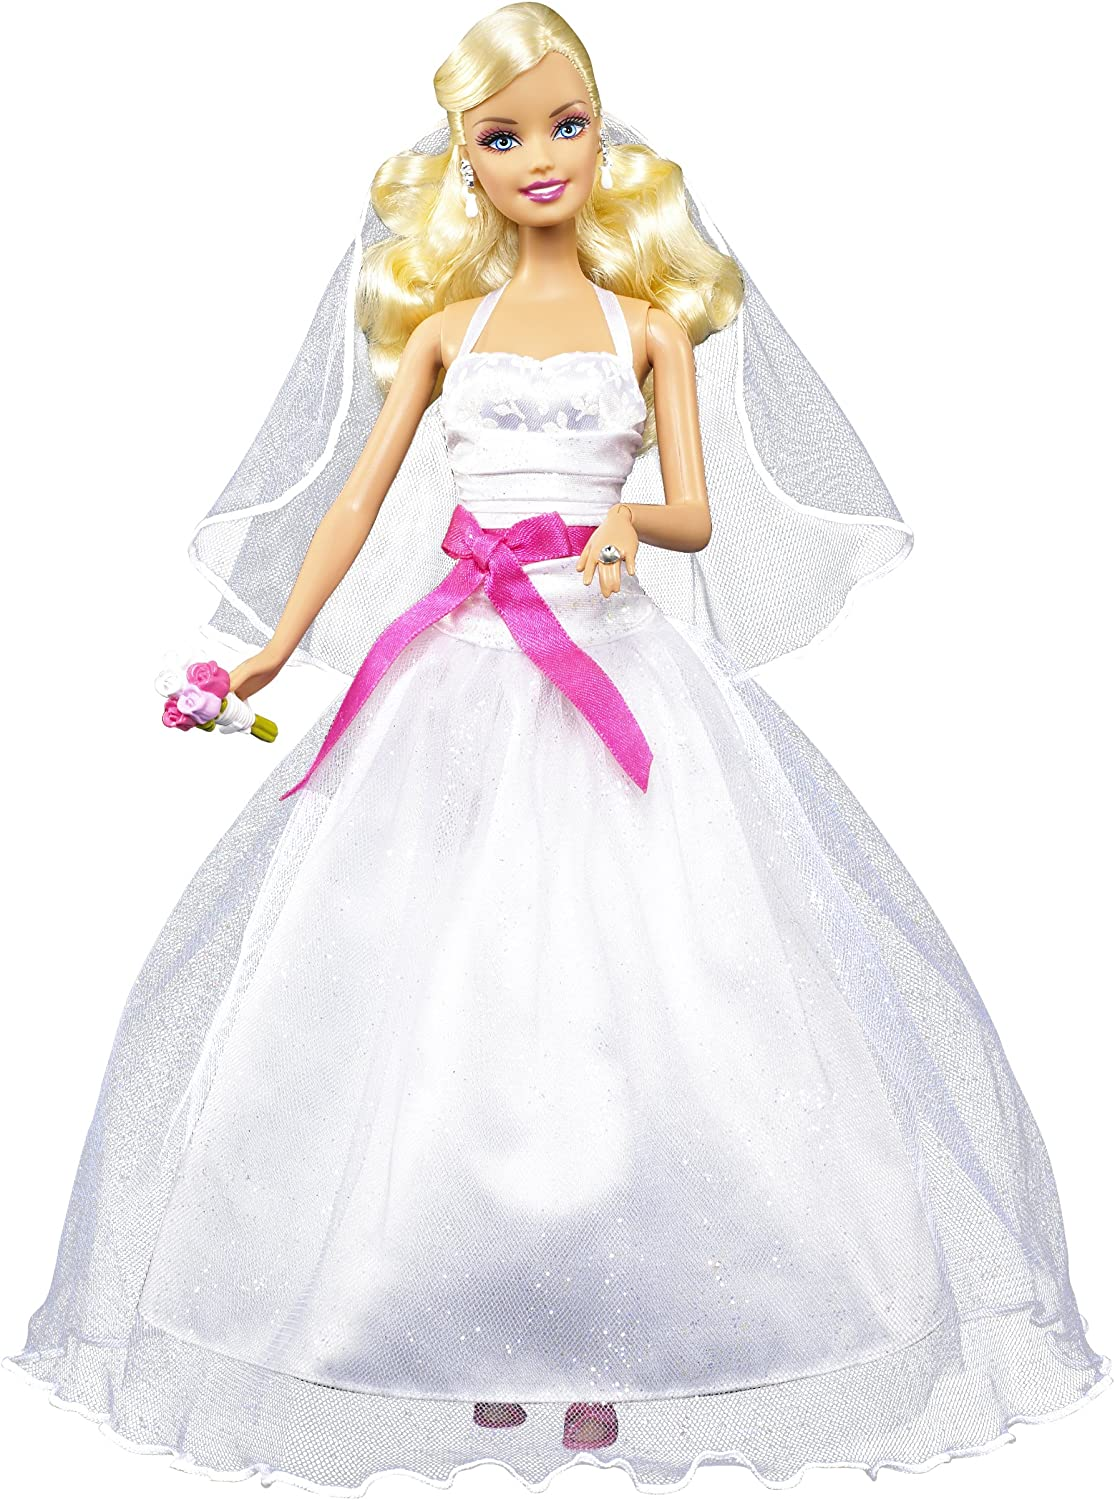 Barbie I Can Topics on TV Bride Doll Be quality assurance